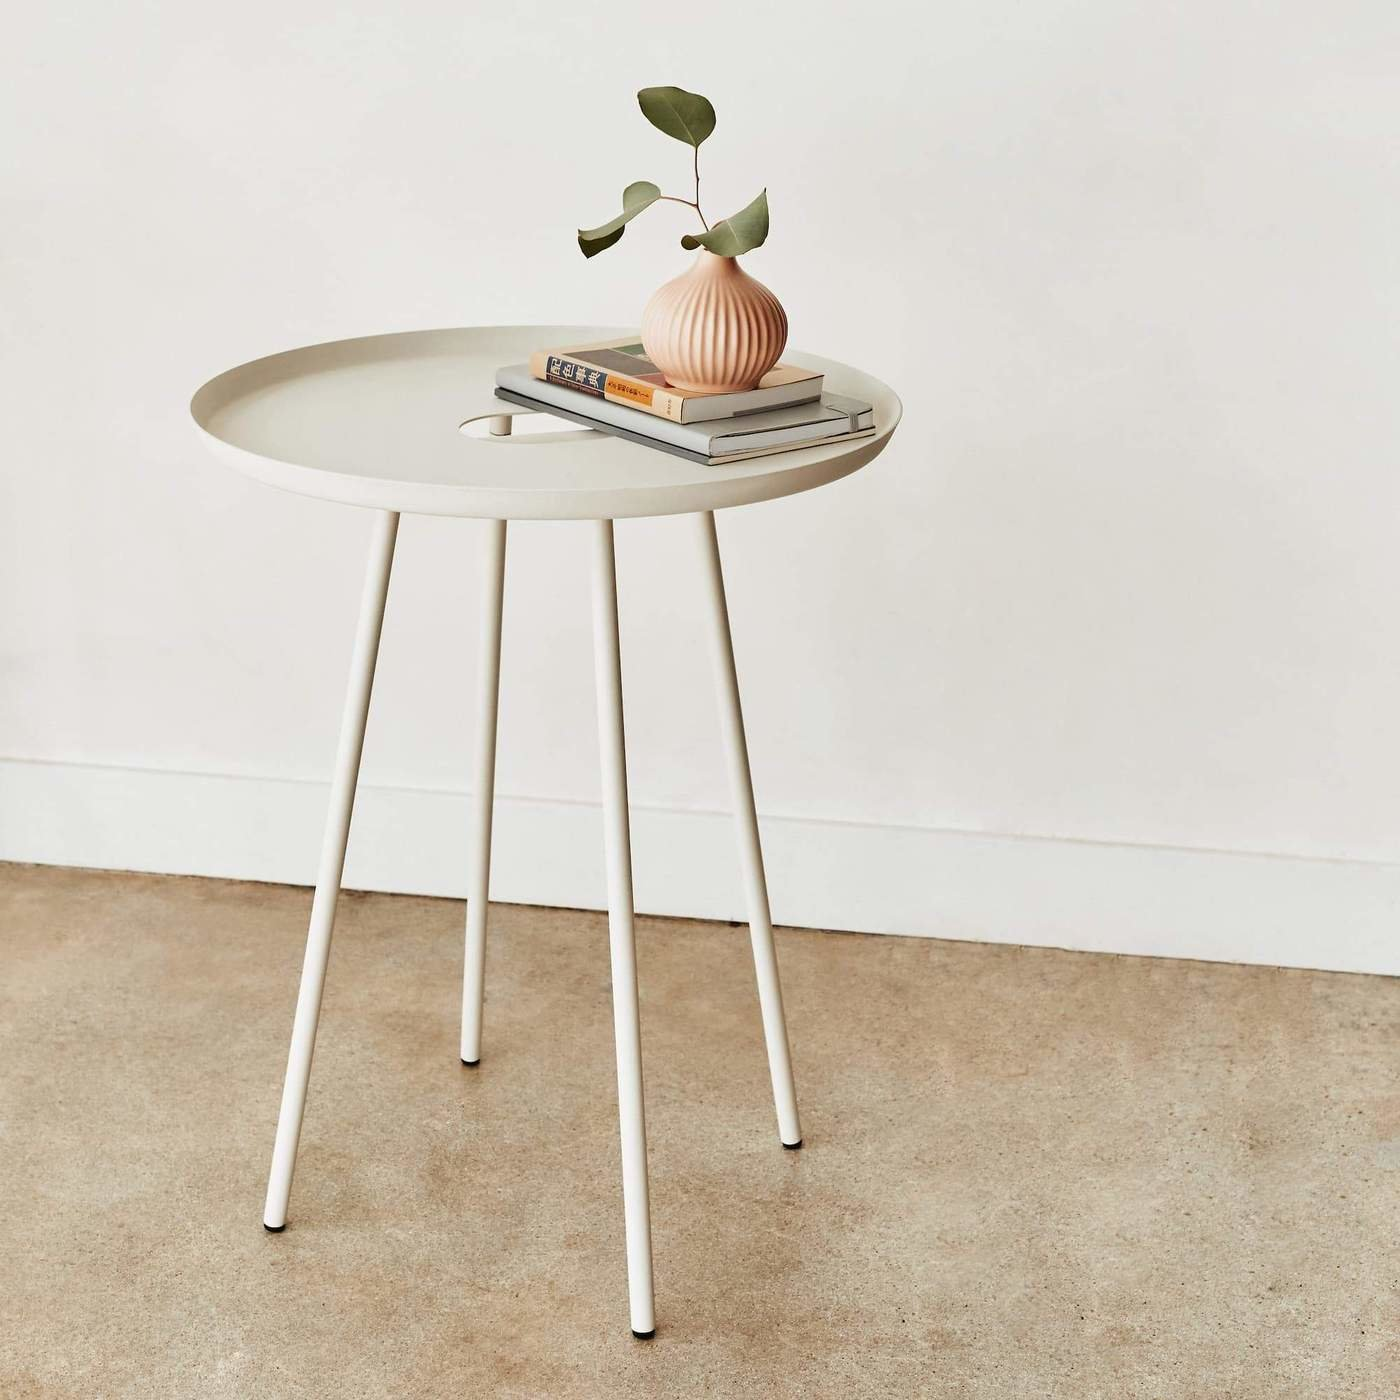 11 of Our Favorite Side Tables for Your Best Living Room